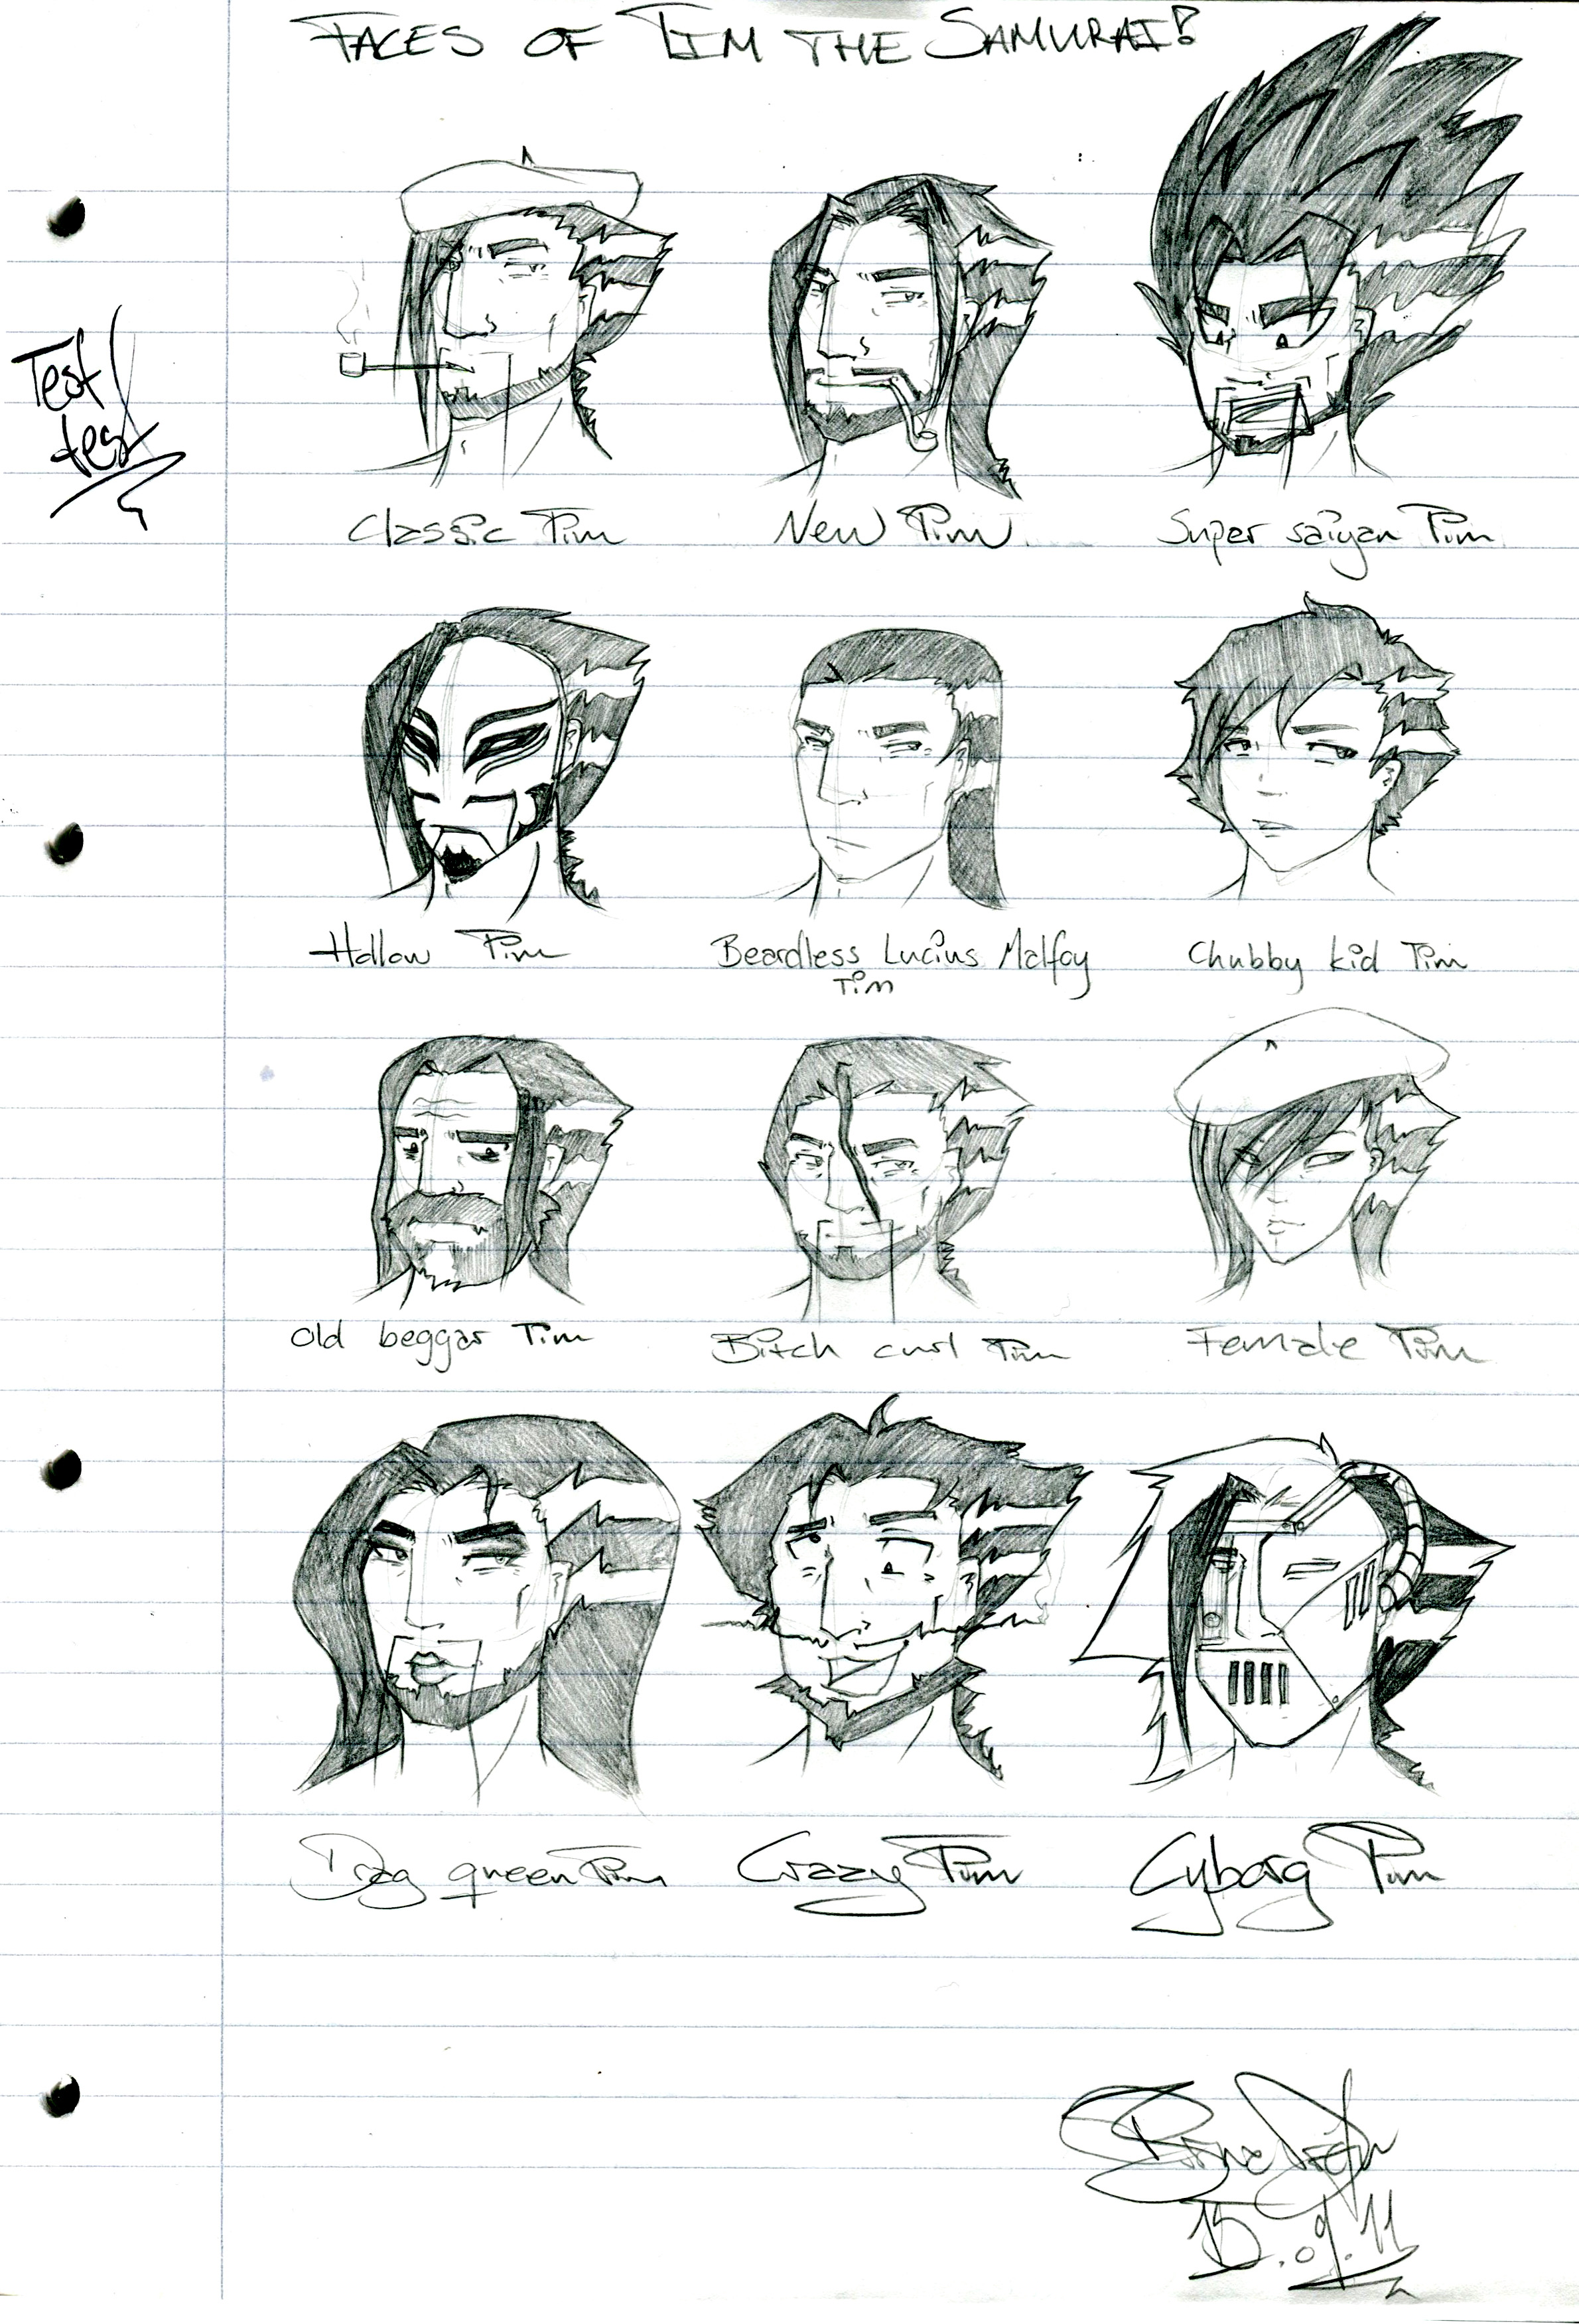 Many faces of Tim the Samurai by zimpo